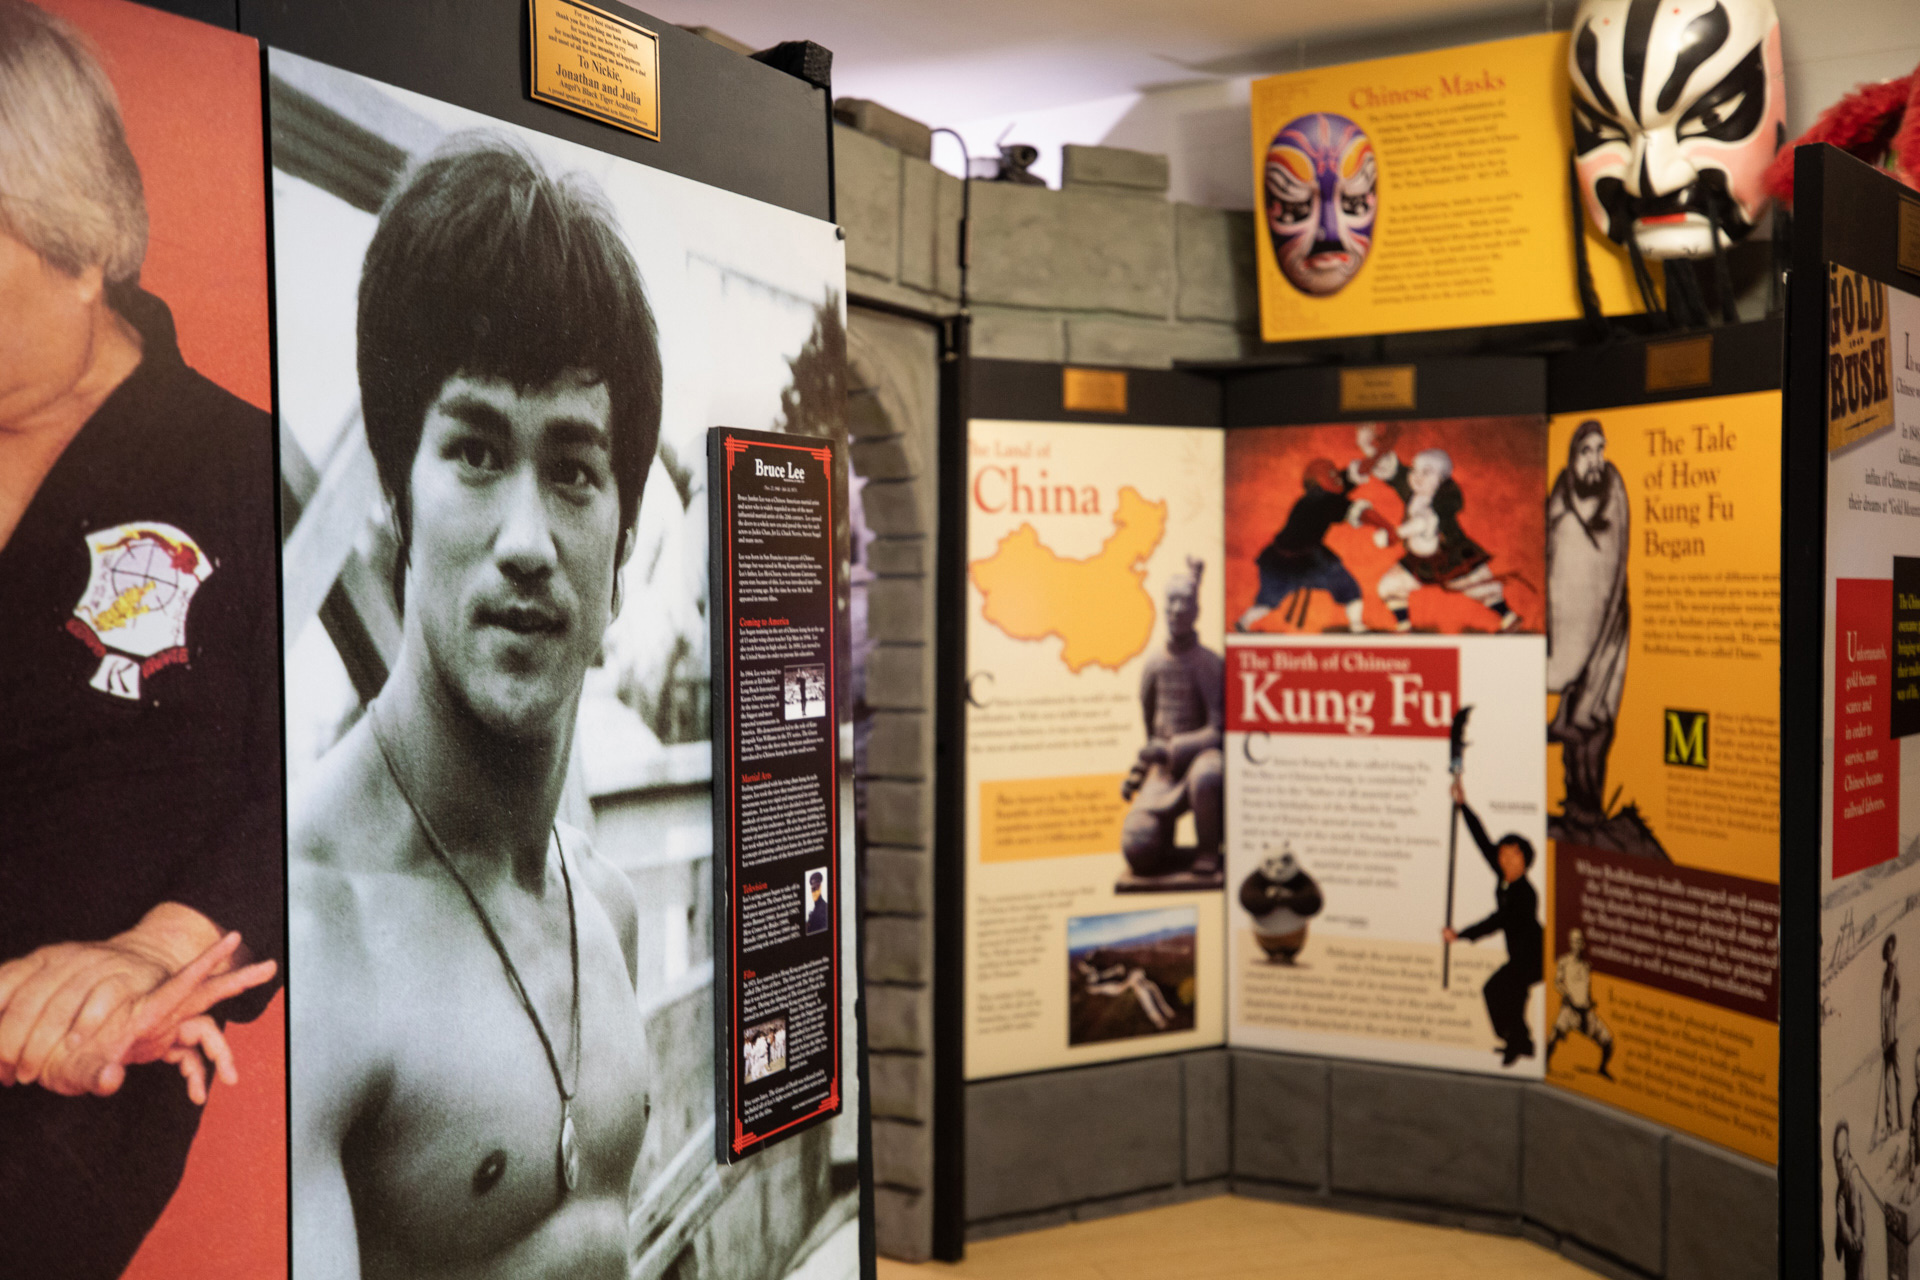 history-close-to-home-6-martial-arts-history-museum-in-the-media